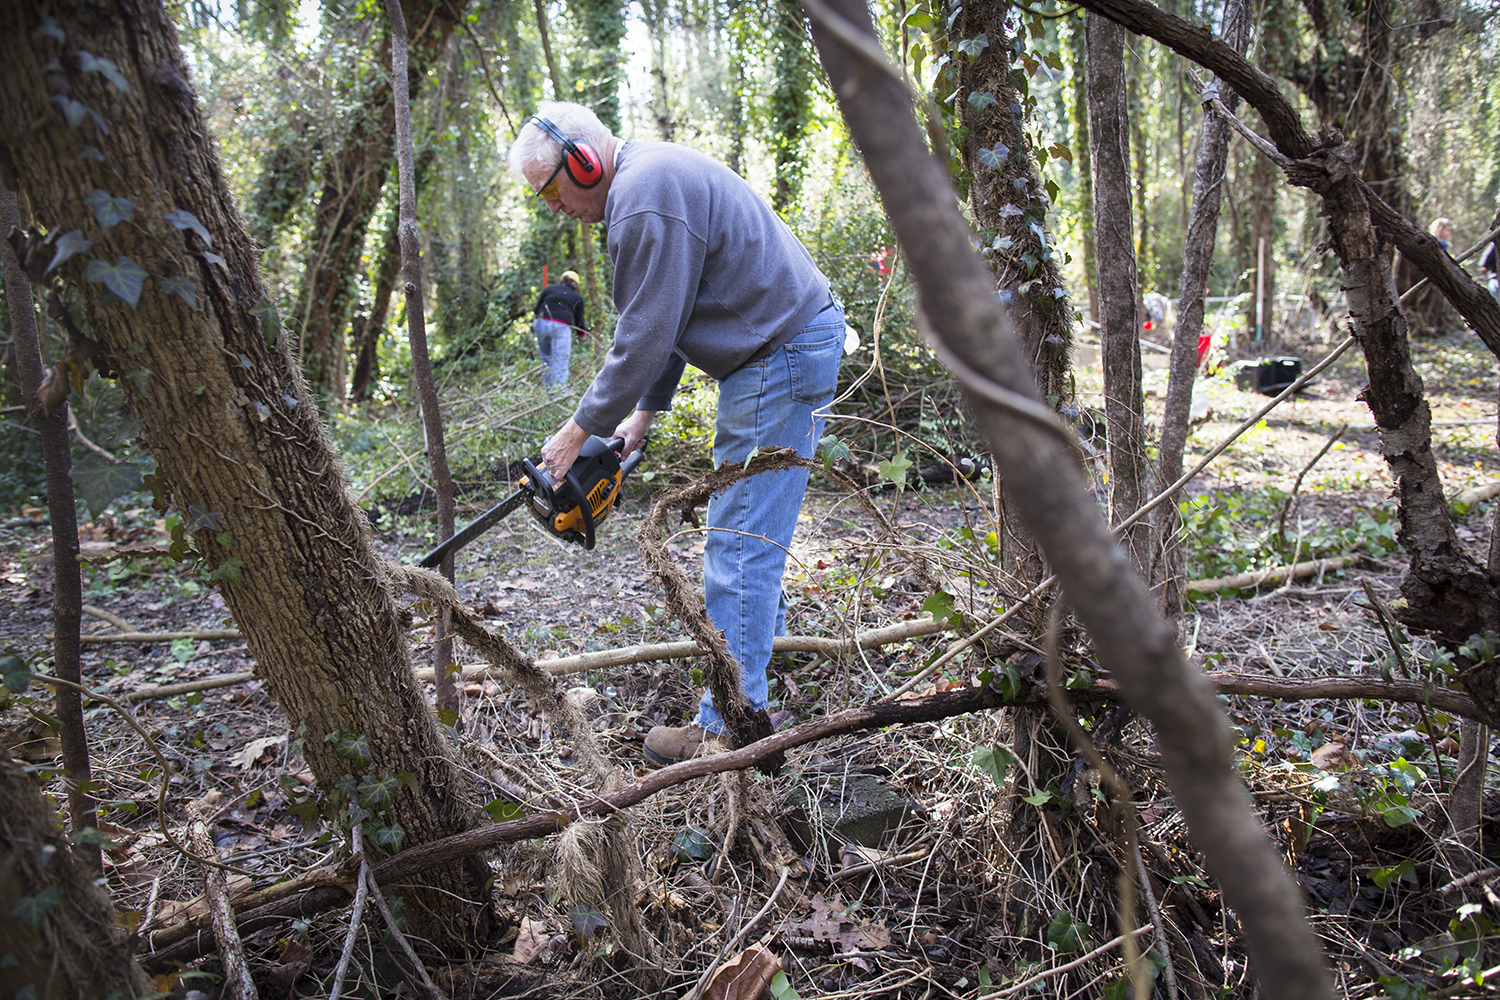 Volunteer coordinator John Shuck chainsaws vines into smaller, dragable pieces, East End Cemetery work day, January 2015.©brianpalmer.photos 2015